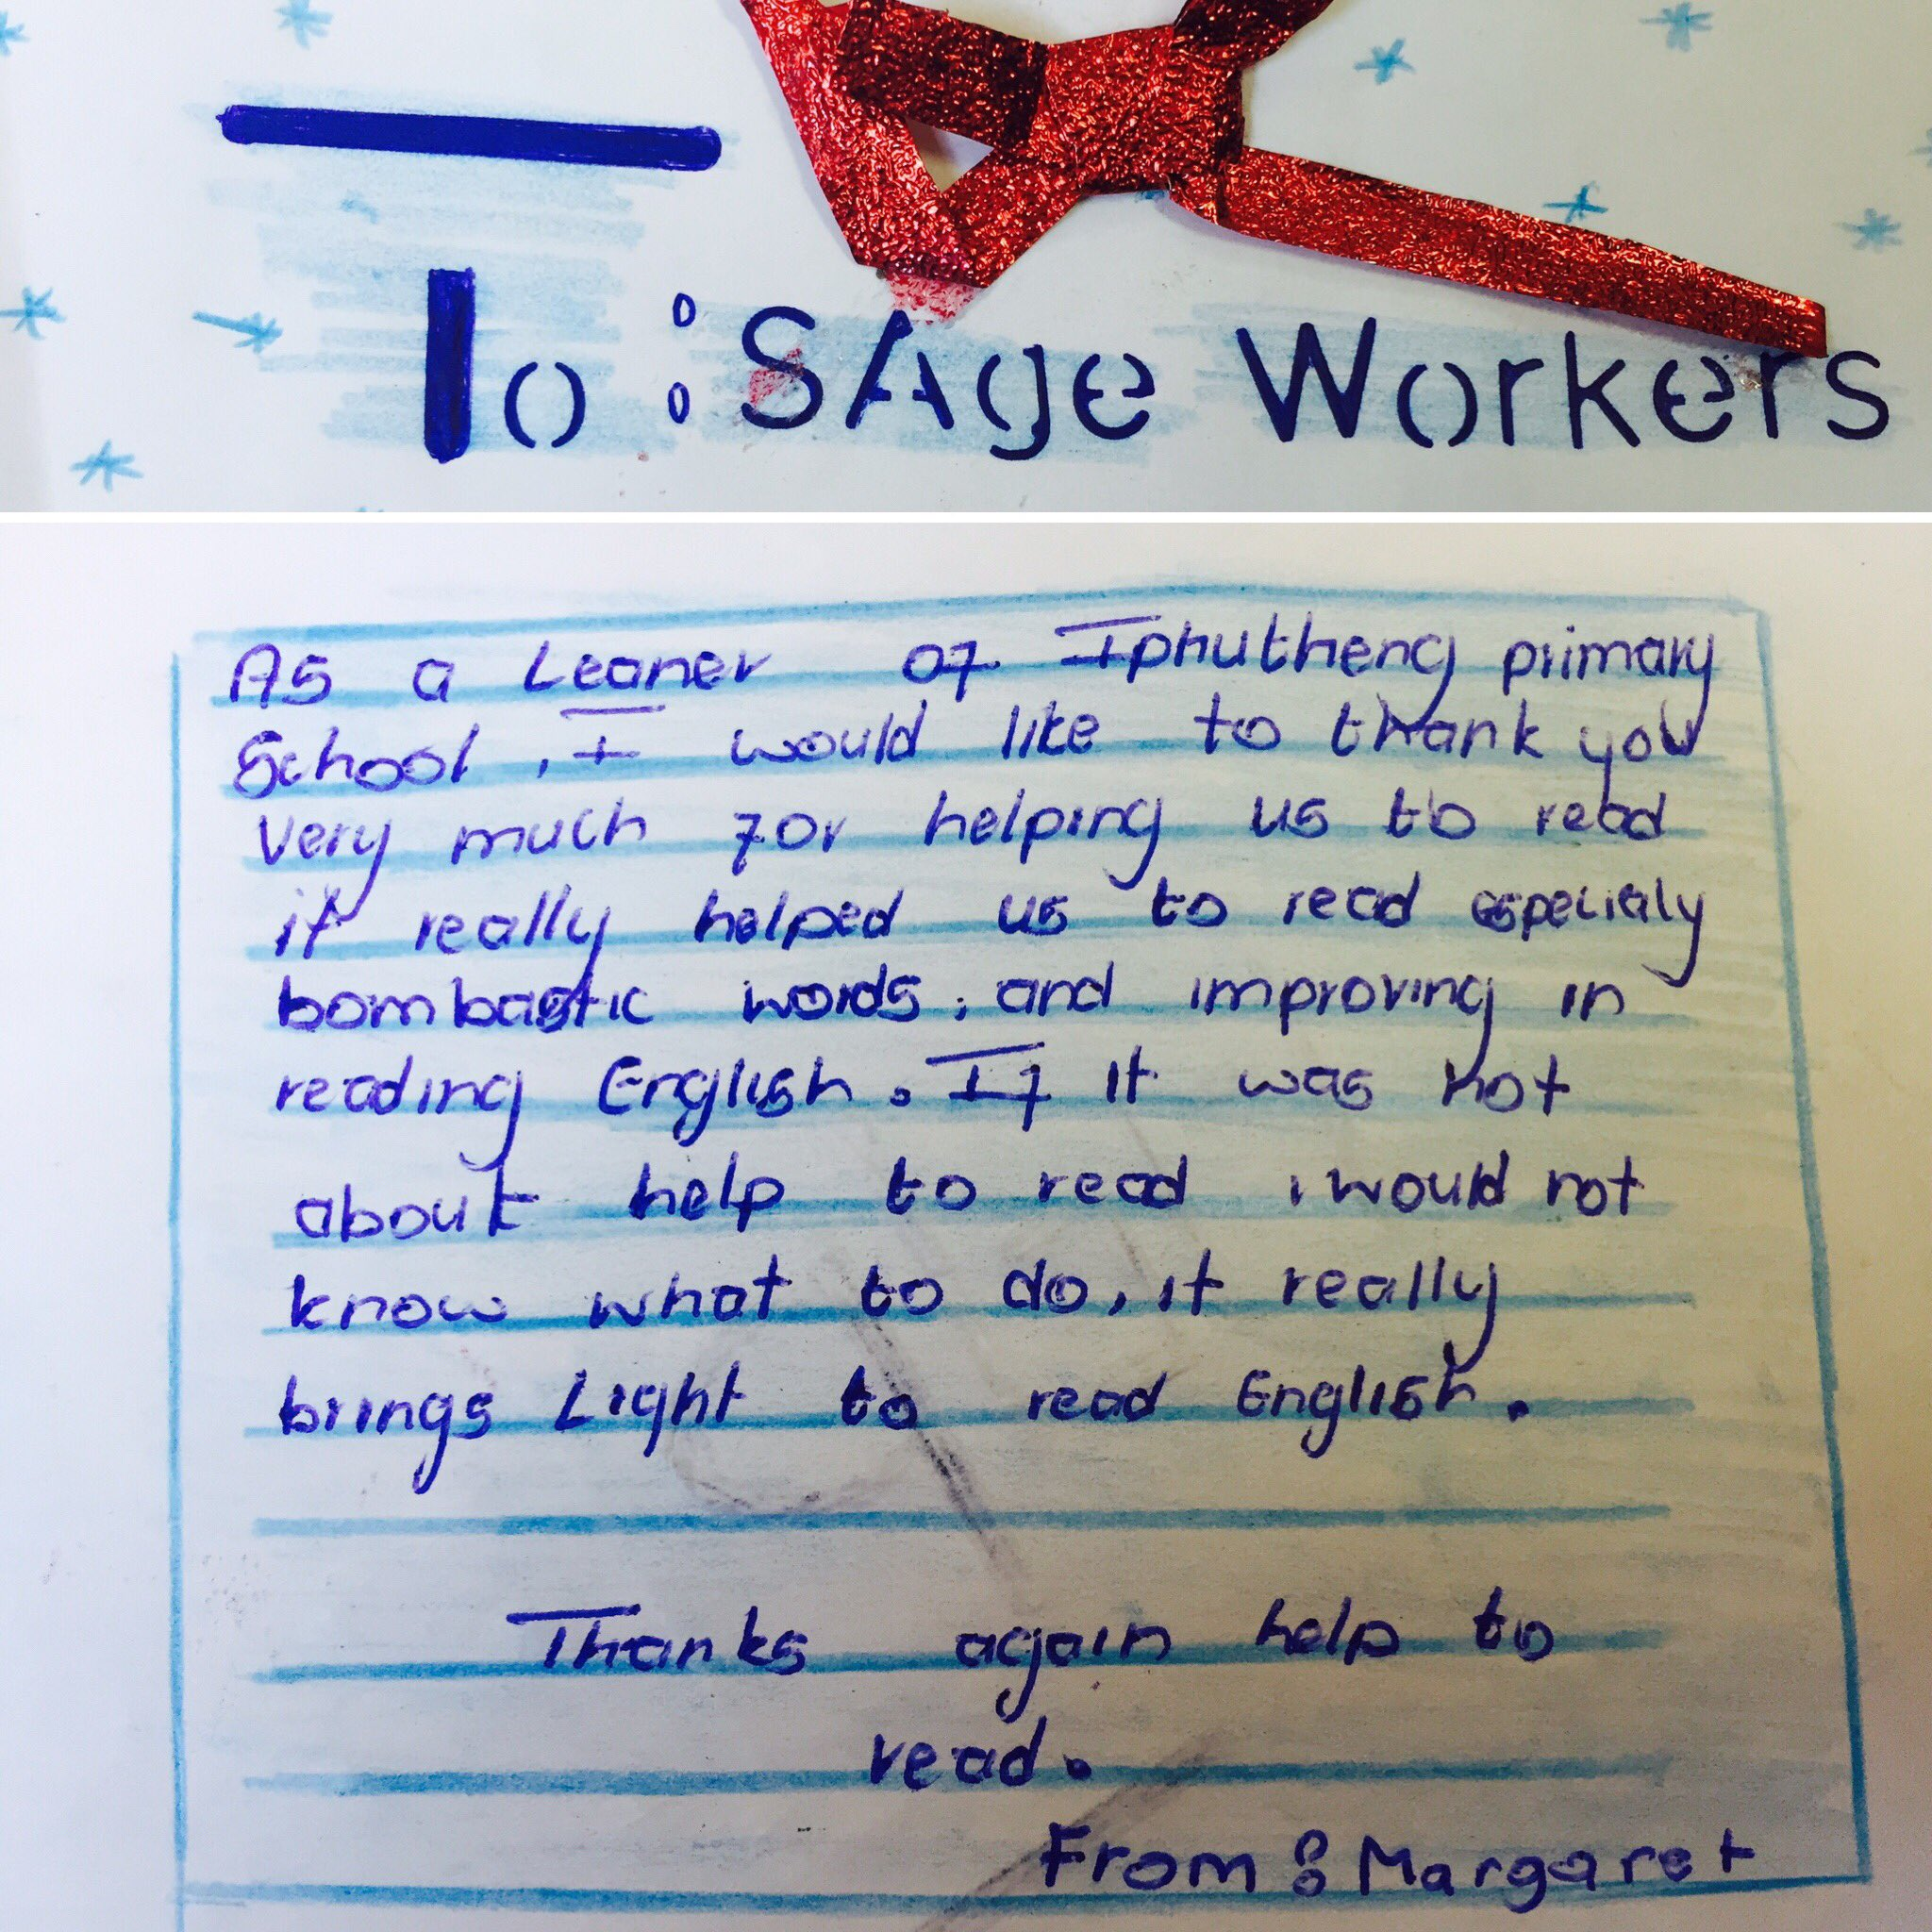 Thank you letter from a learner at Iphutheng Primary #SageFoundation Literacy Project @SageGroupZA #bombasticwords❤️ https://t.co/fd1xq3SVF5